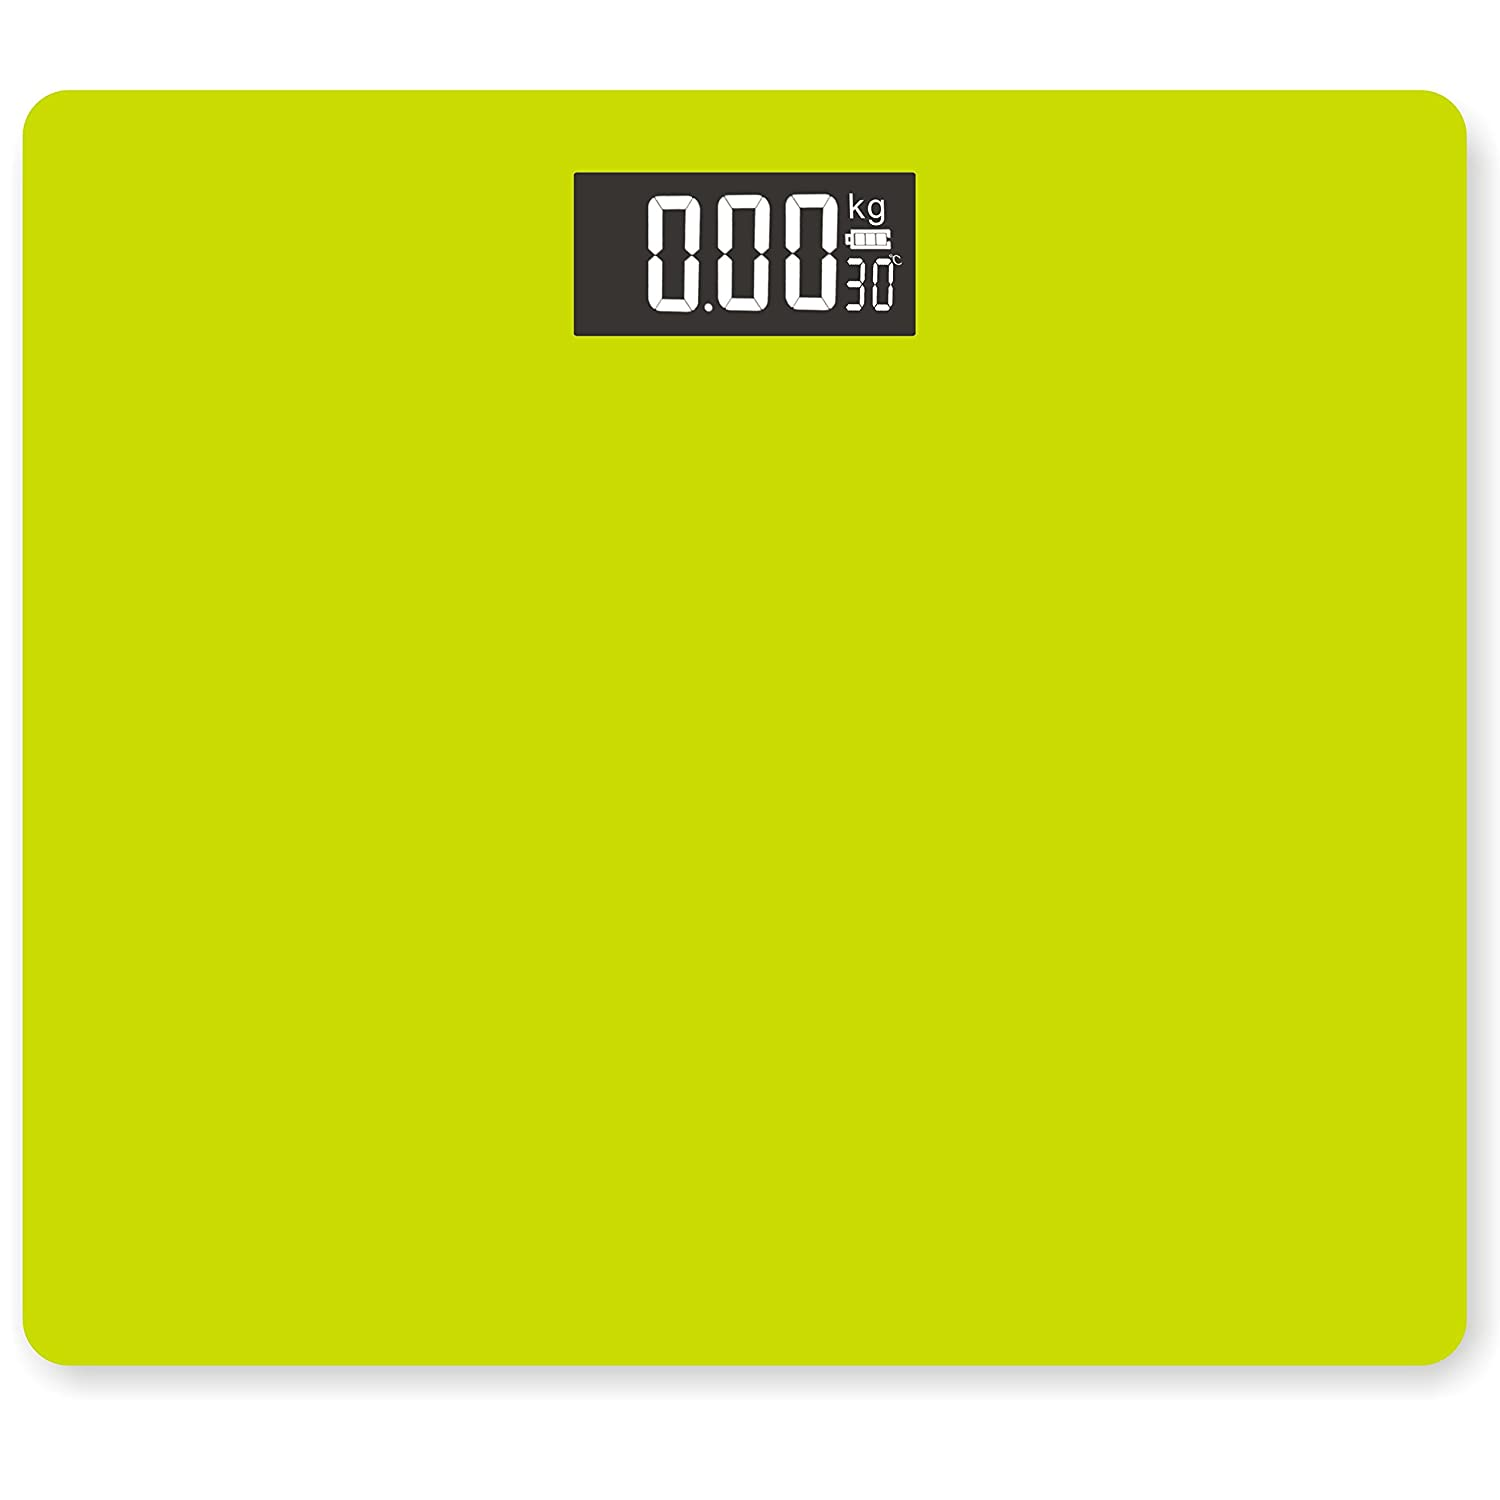 DR. HEALTH 400 lbs Digital Bathroom Scale Measures Weight. Bath Scale, Step-on Activation Vanity Body Scale (Green) DIGIPARTS